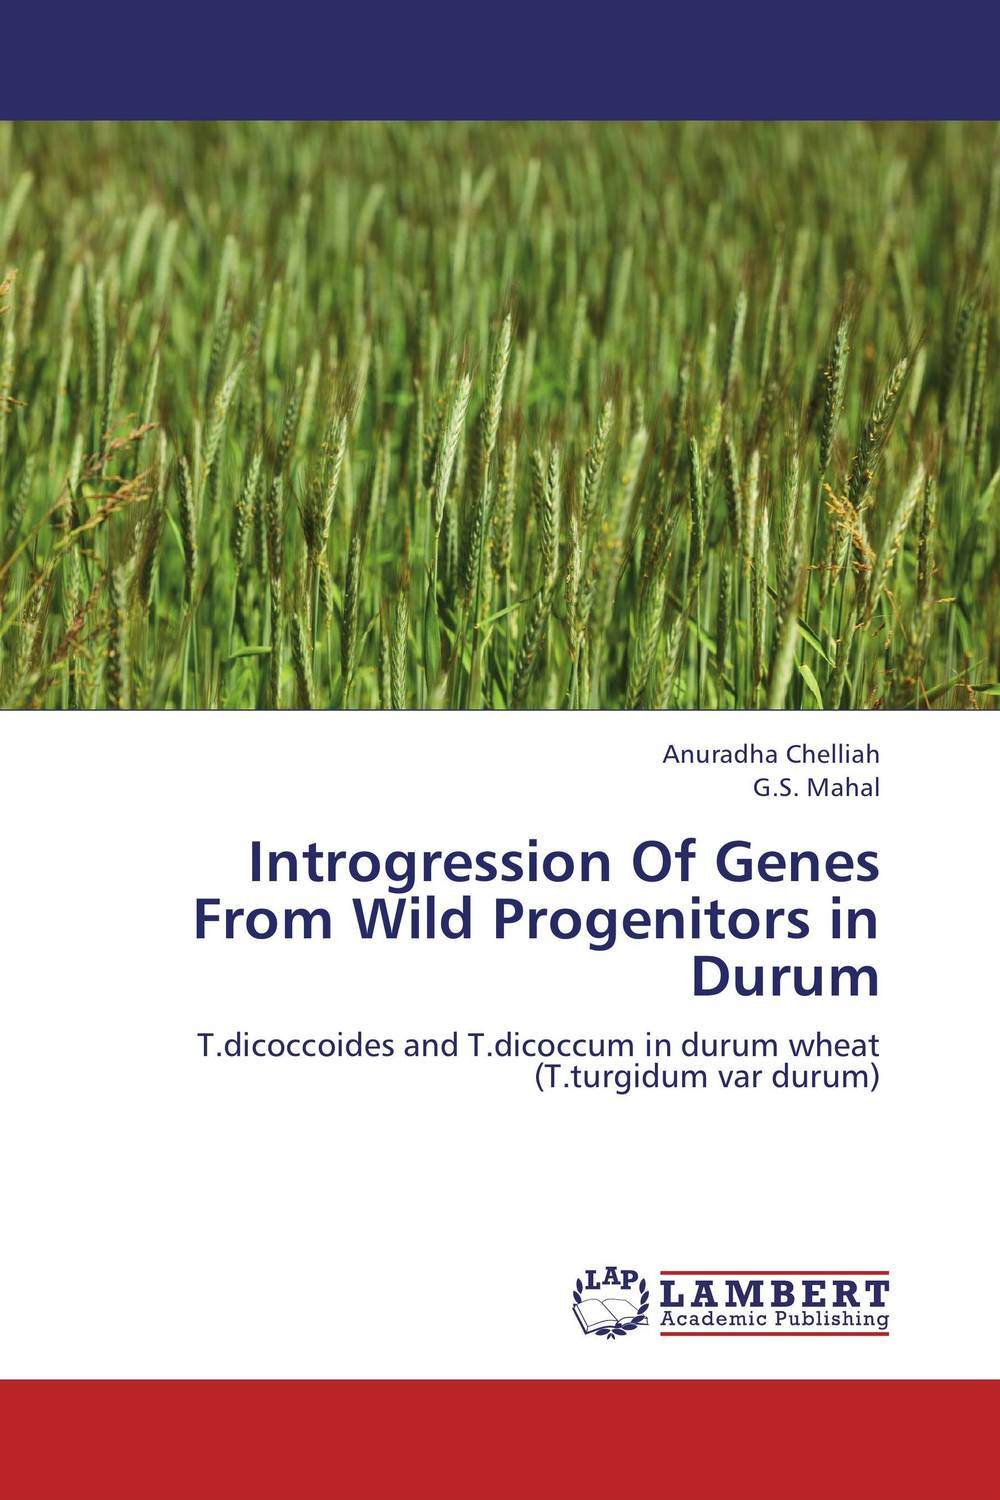 Introgression Of Genes From Wild Progenitors in Durum effect of methods of composting on quality of compost from wheat straw